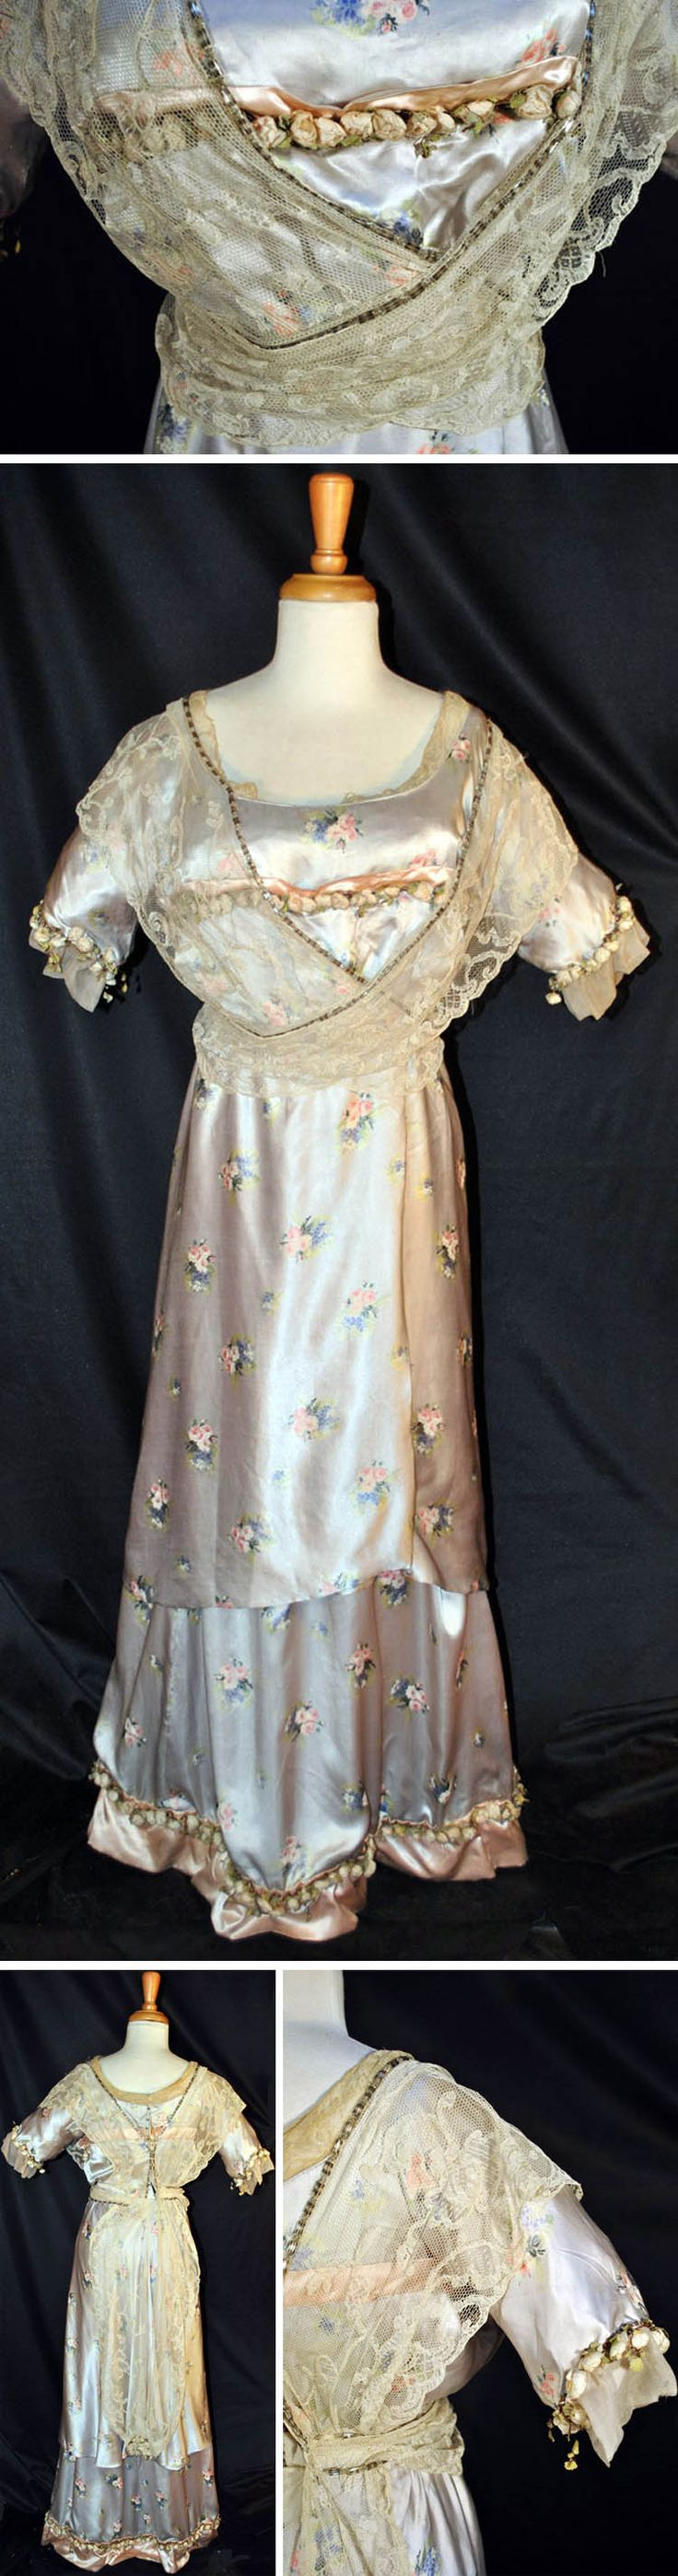 Evening dress, Thurn, New York, ca. 1915. Printed floral satin with low, rounded neckline and short sleeves. White lace with white glass beads at bodice and down back. Sleeves trimmed with tulle and fabric florets (also below bustline & in back). Back hook & eye closure from neck through hips. Old Threads Antique Textiles/ebay